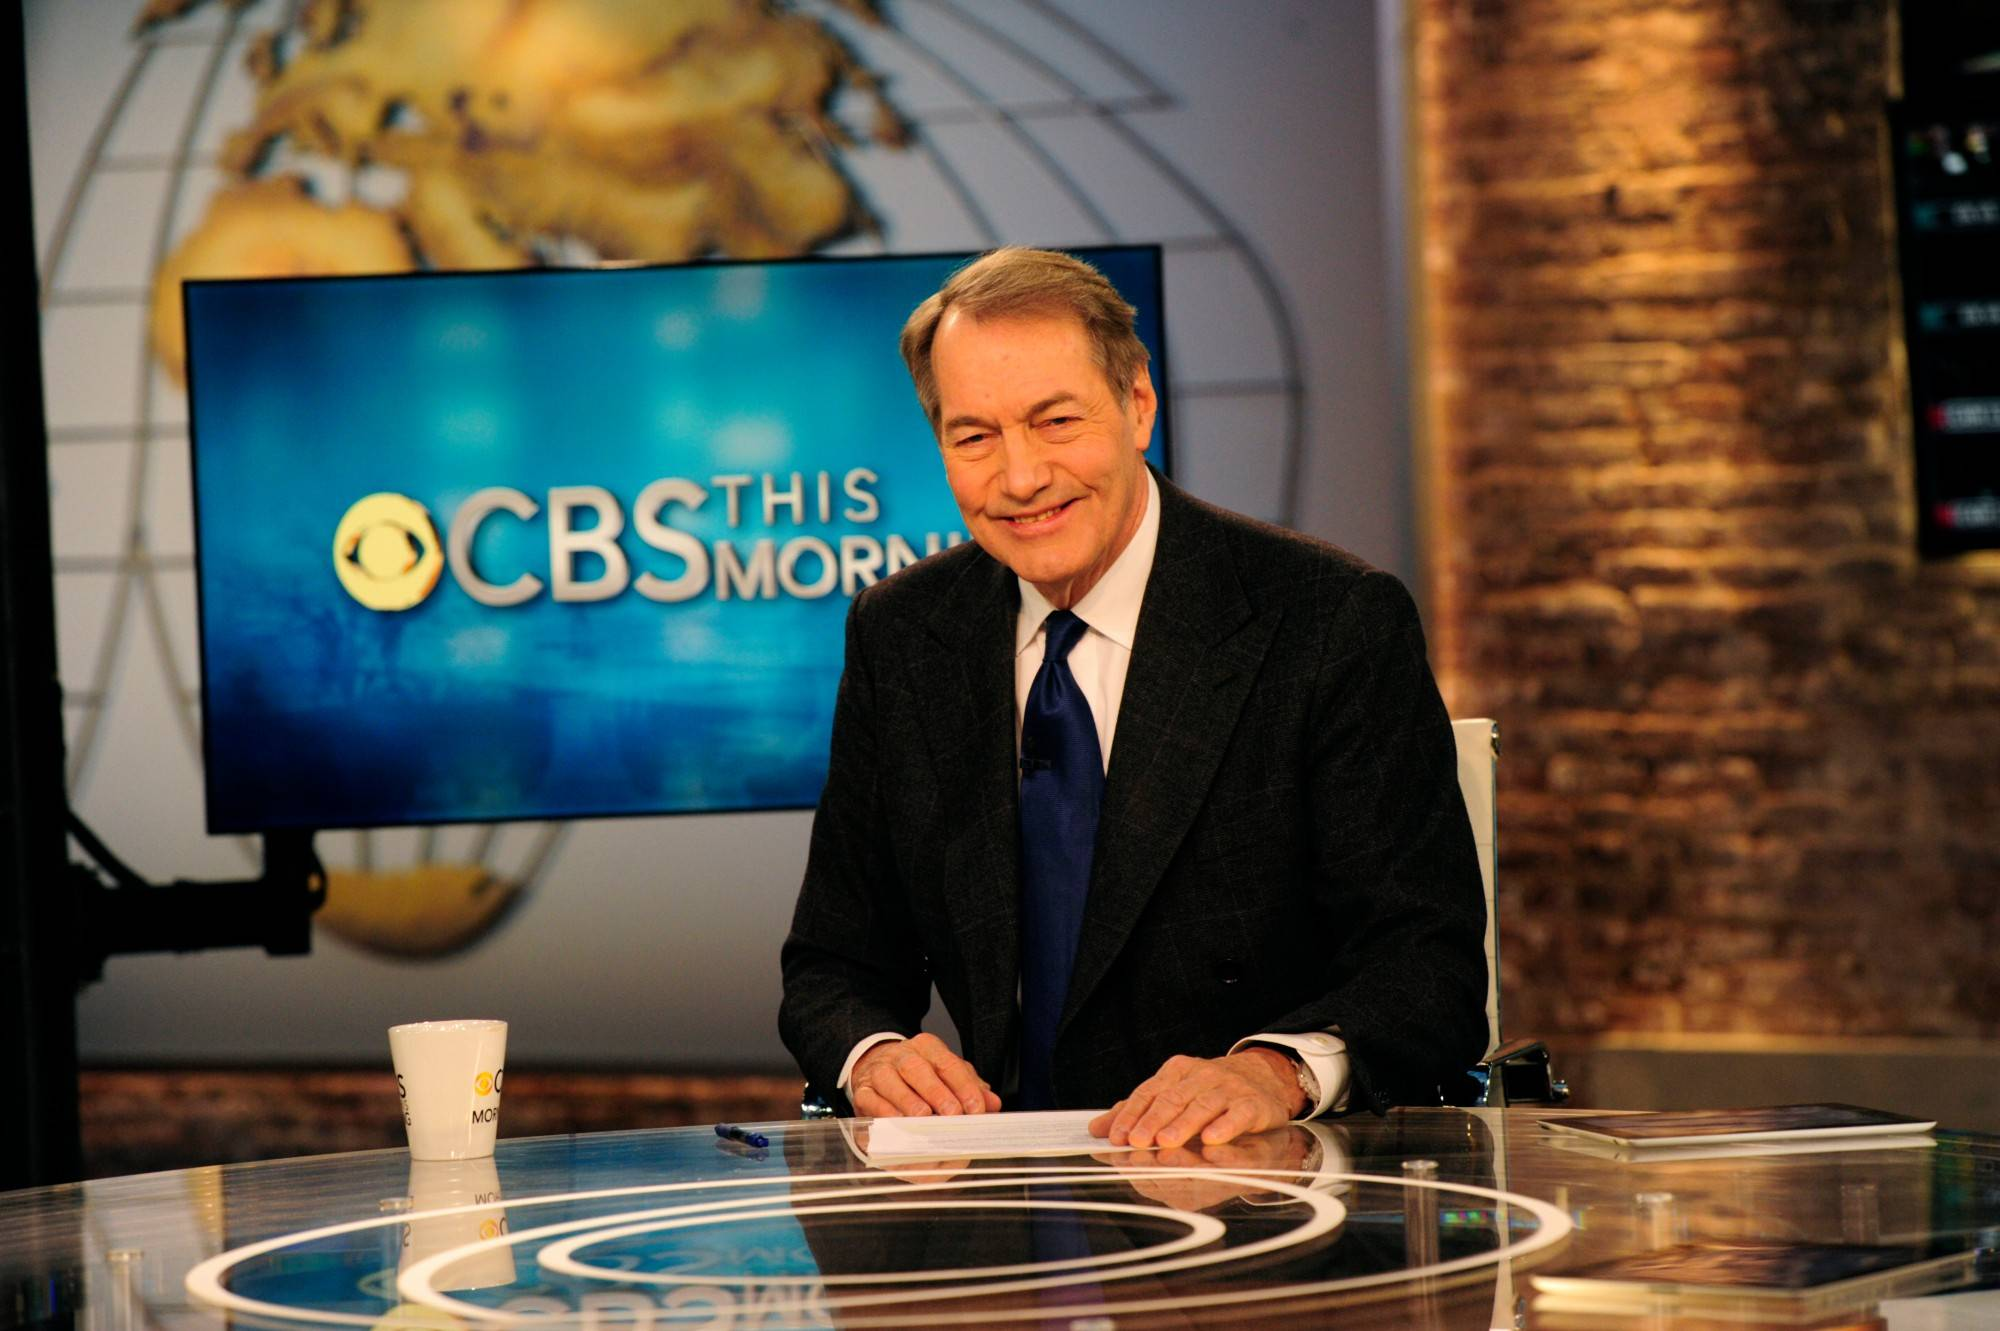 A new study suggests that, if you don't want to gain weight, you should watch Charlie Rose — or any more leisurely paced talk show.